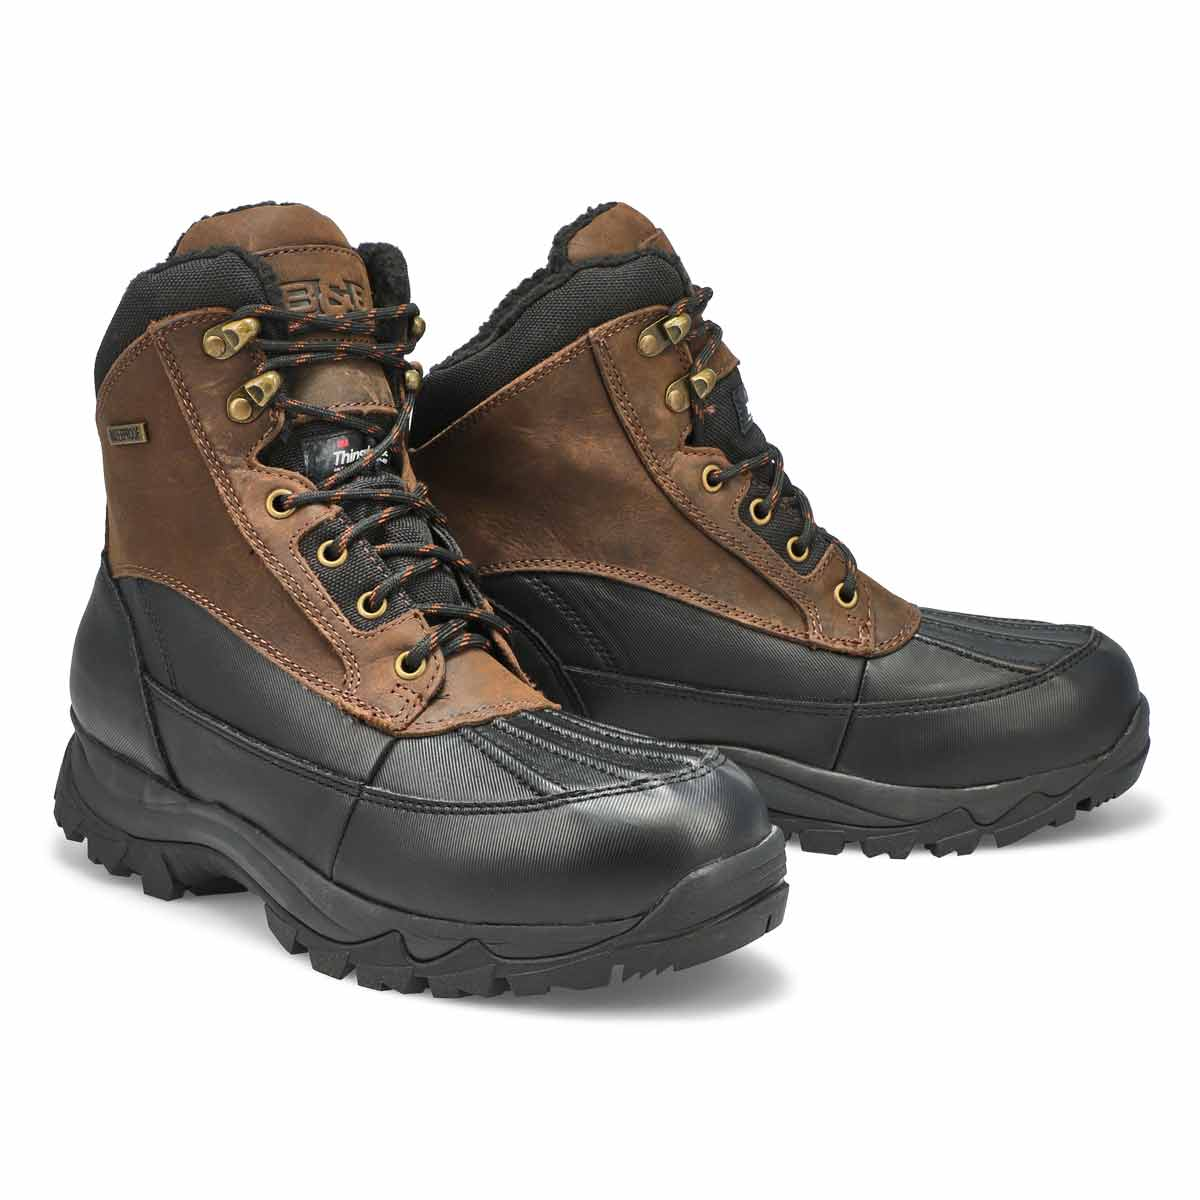 Mns Murphy brown crzy wtpf winter boot